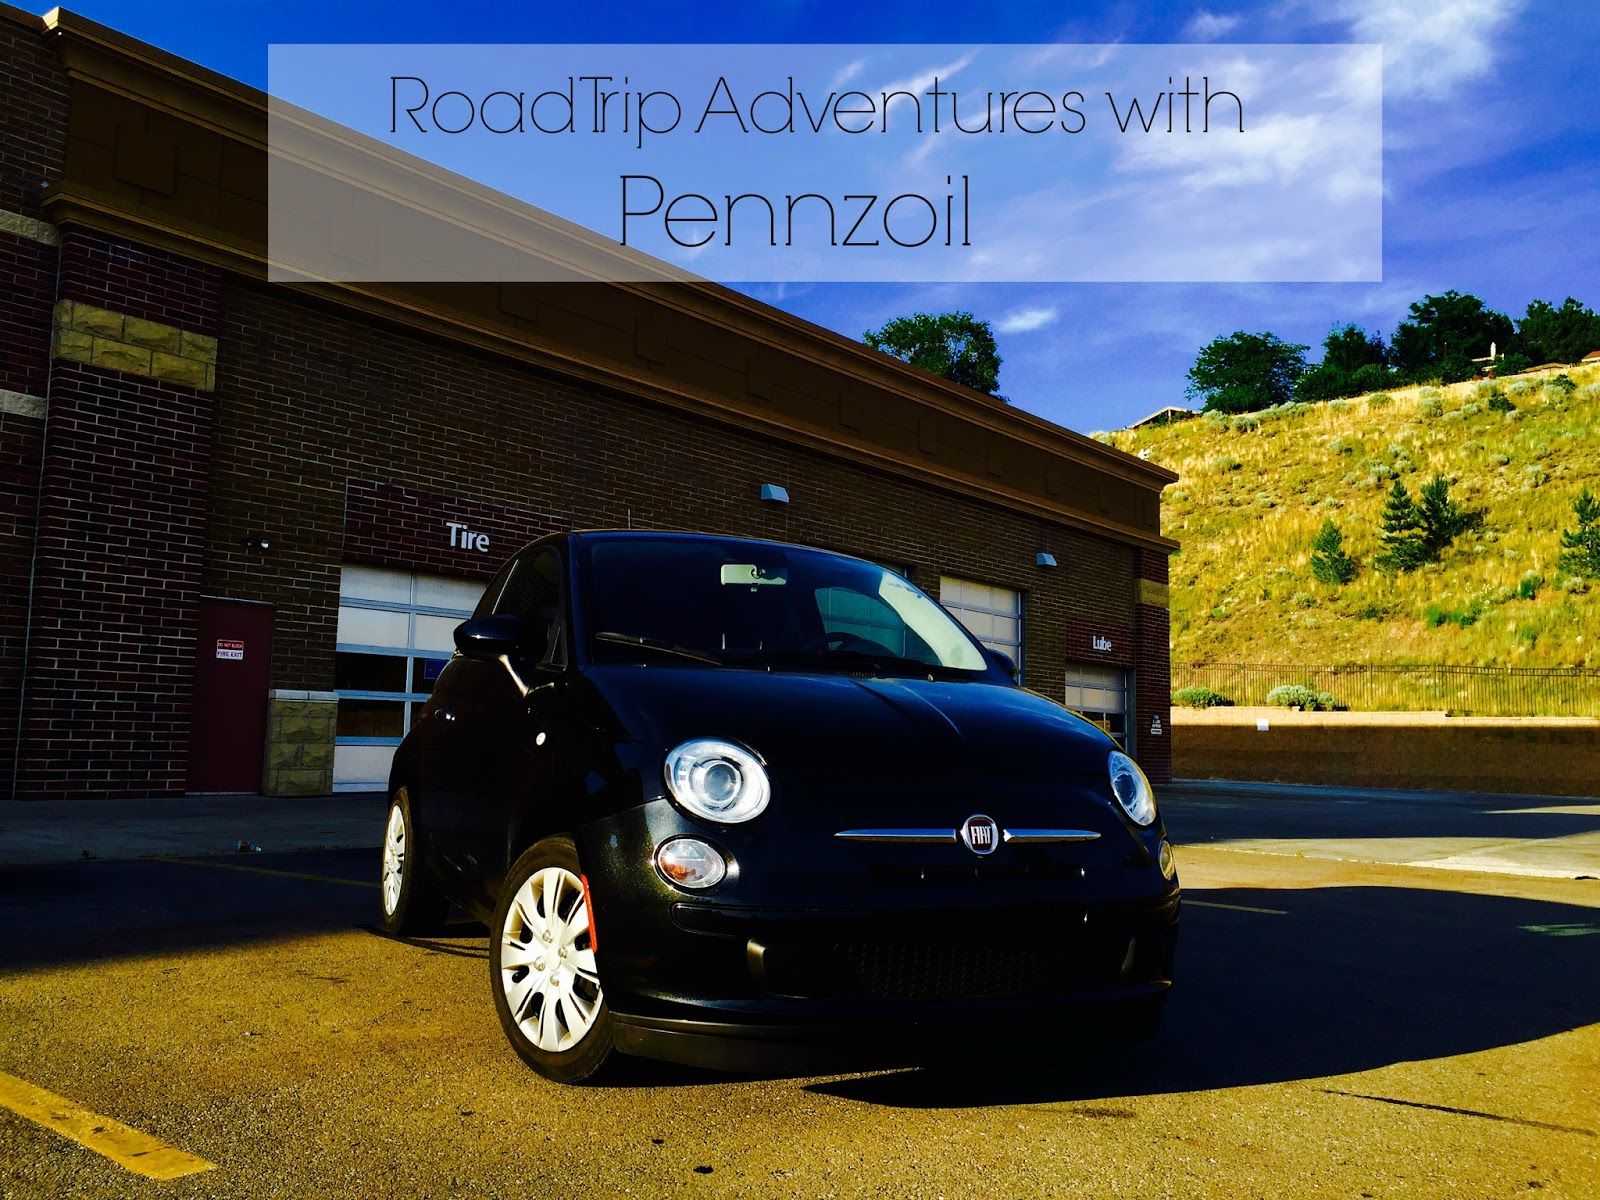 pennzoil, pennzoil high mileage, pennzoil fully synthetic, fiat, fiat pop car, fiat pop, 2013 fiat, new car, road trip adventures, black car with pennzoil, pretty, pennzoil summer rollback, walmart, cbias,